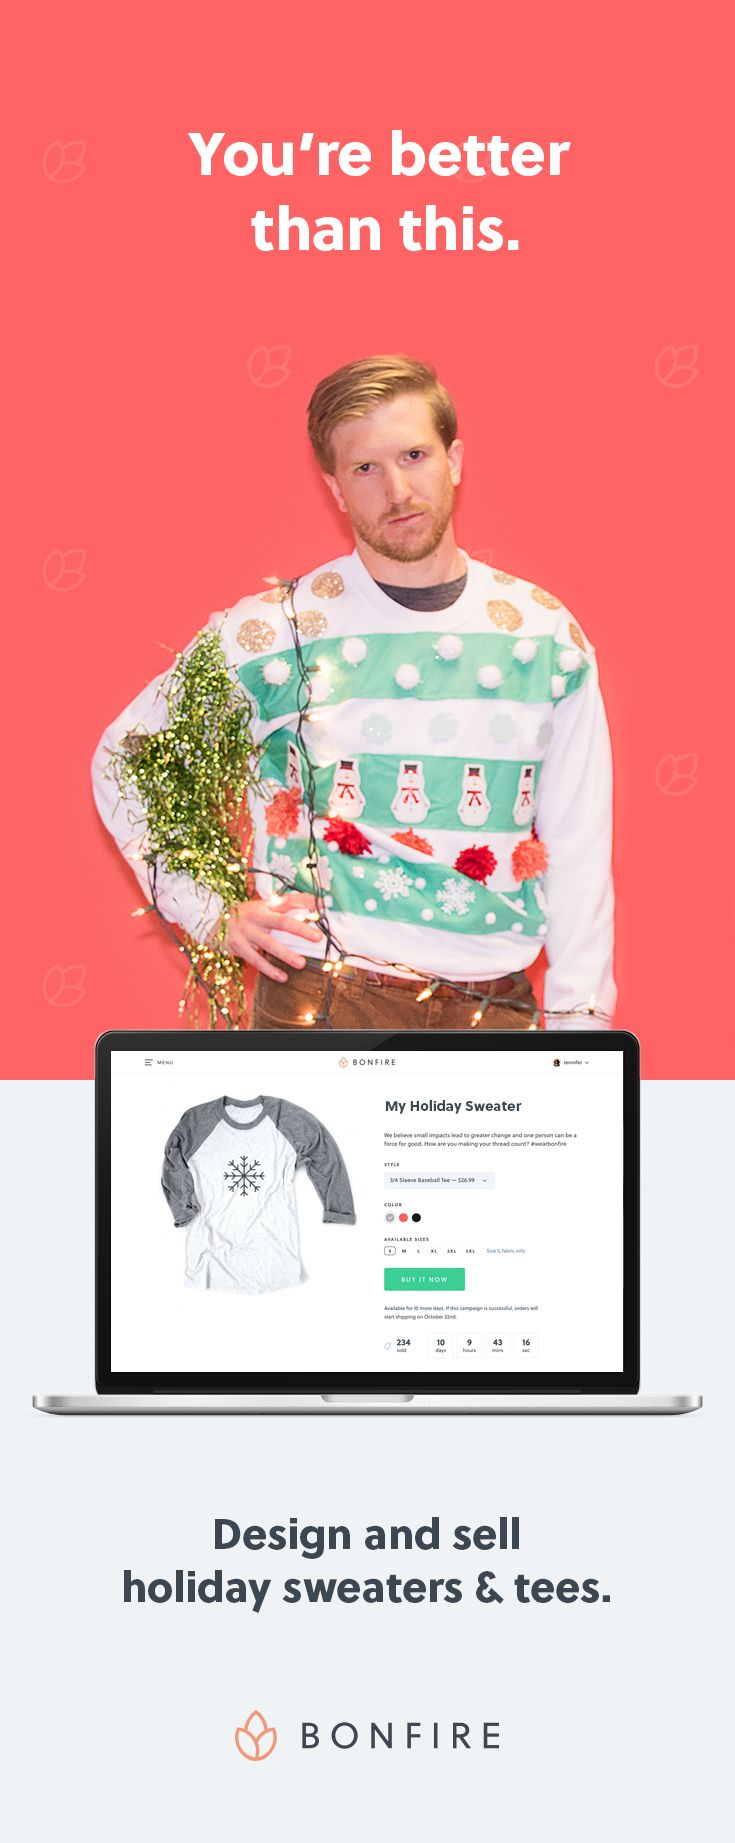 Design your t shirt and sell - Design And Sell Holiday Sweaters And Tees